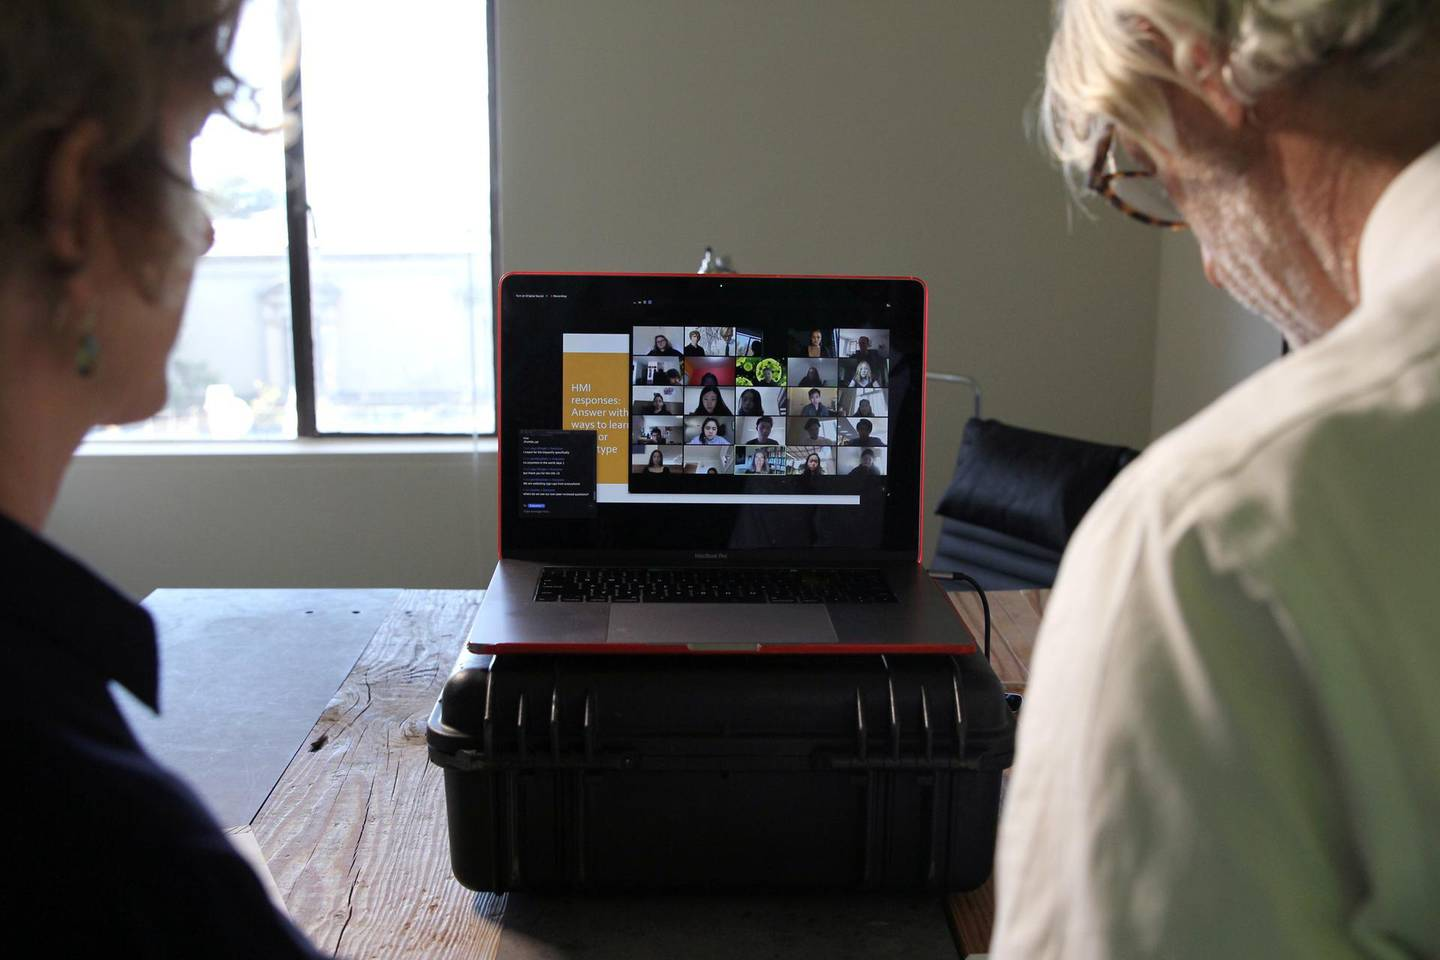 University of California, Berkeley Professors Lisa Wymore (L) and Greg Niemeyer look at the Zoom screen showing students in their online Collaborative Innovation course in Berkeley, California, U.S., March 12, 2020. REUTERS/Nathan Frandino